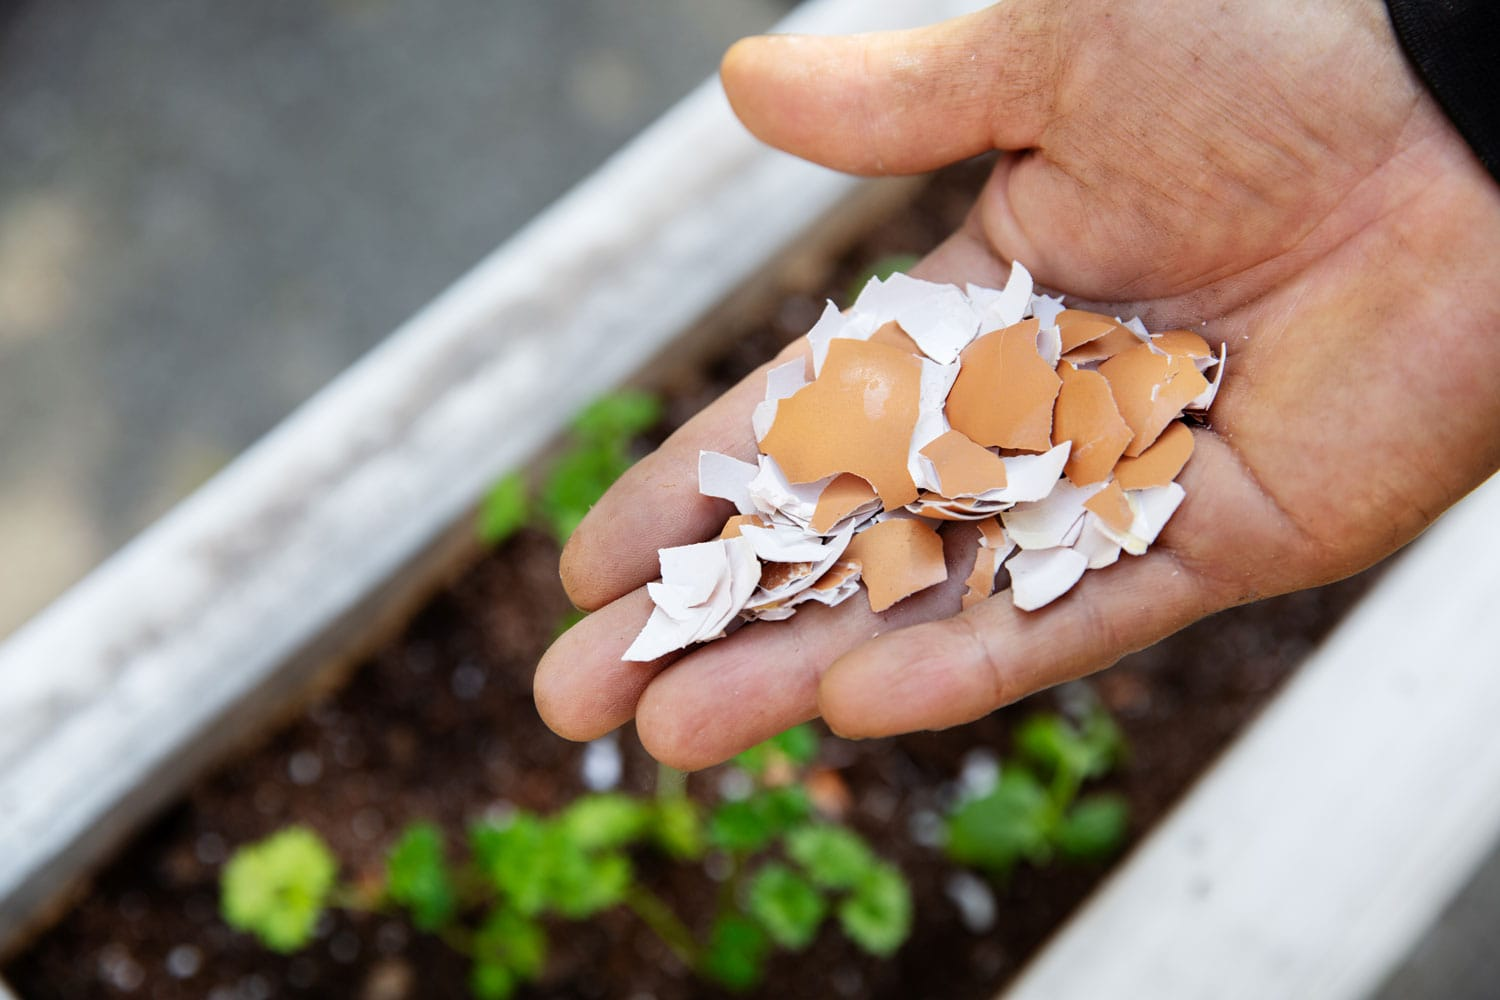 A hand with broken egg shells and garden in background.